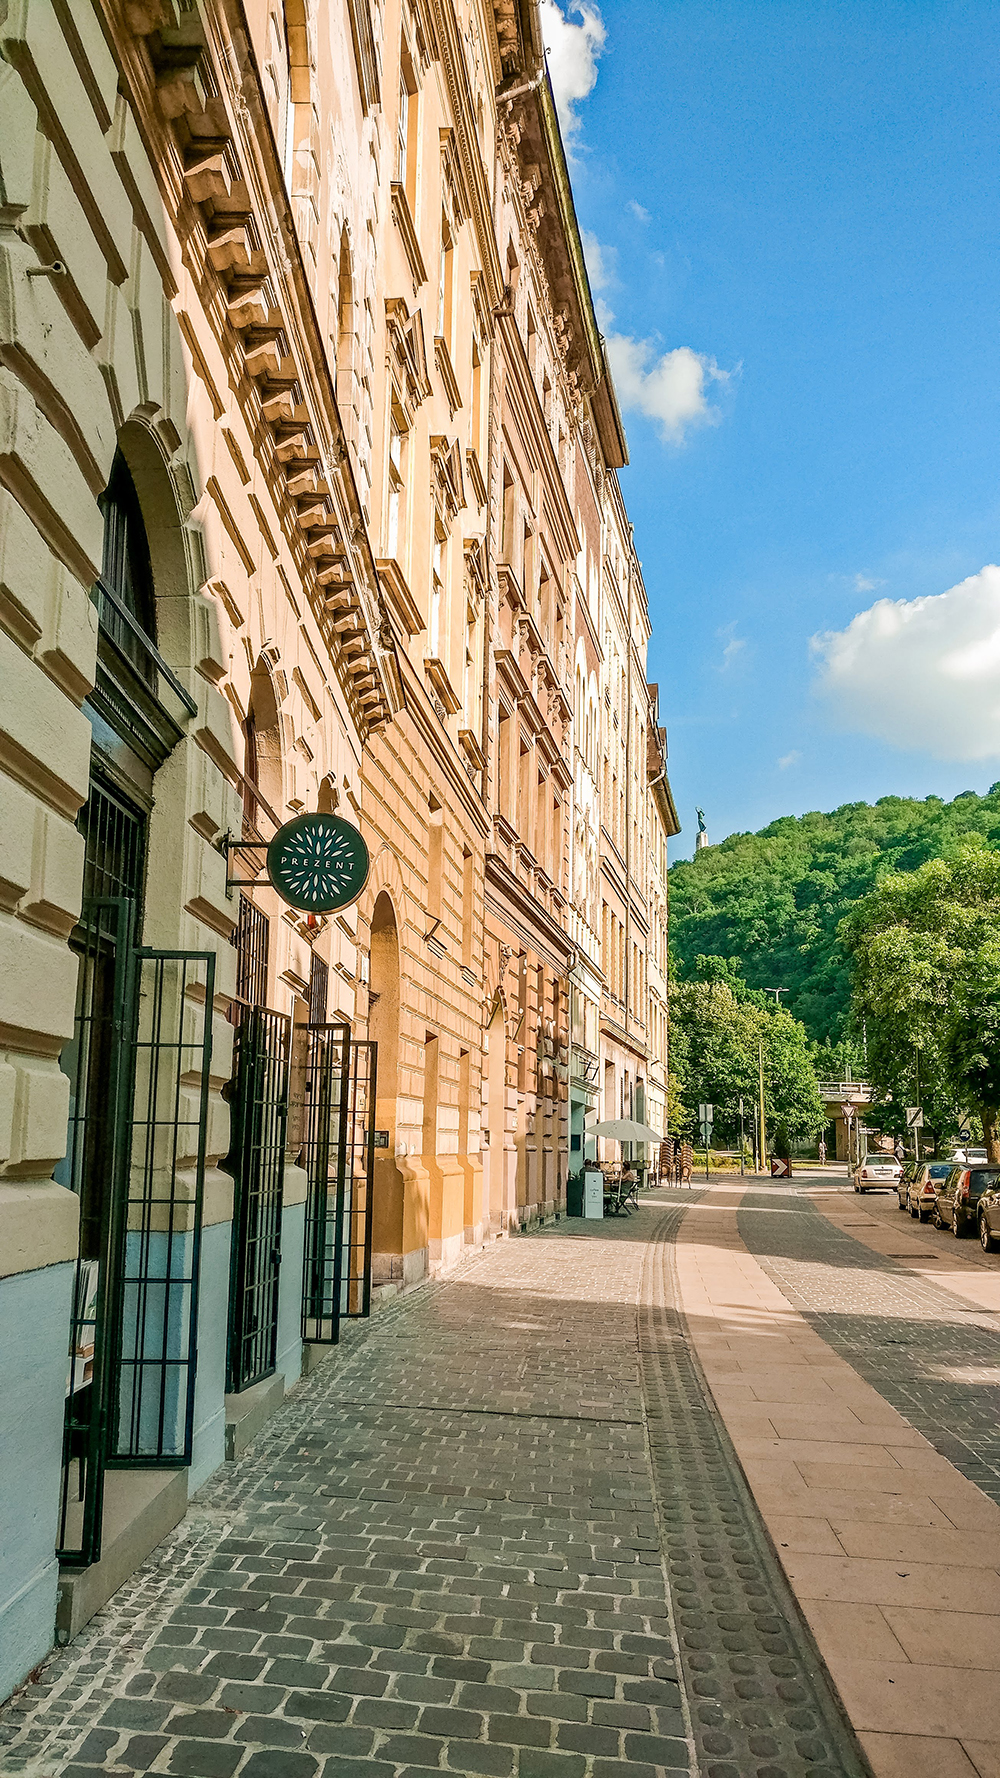 Prezent Shop - Budapest design shop guide to best Hungarian souvenirs | Aliz's Wonderland